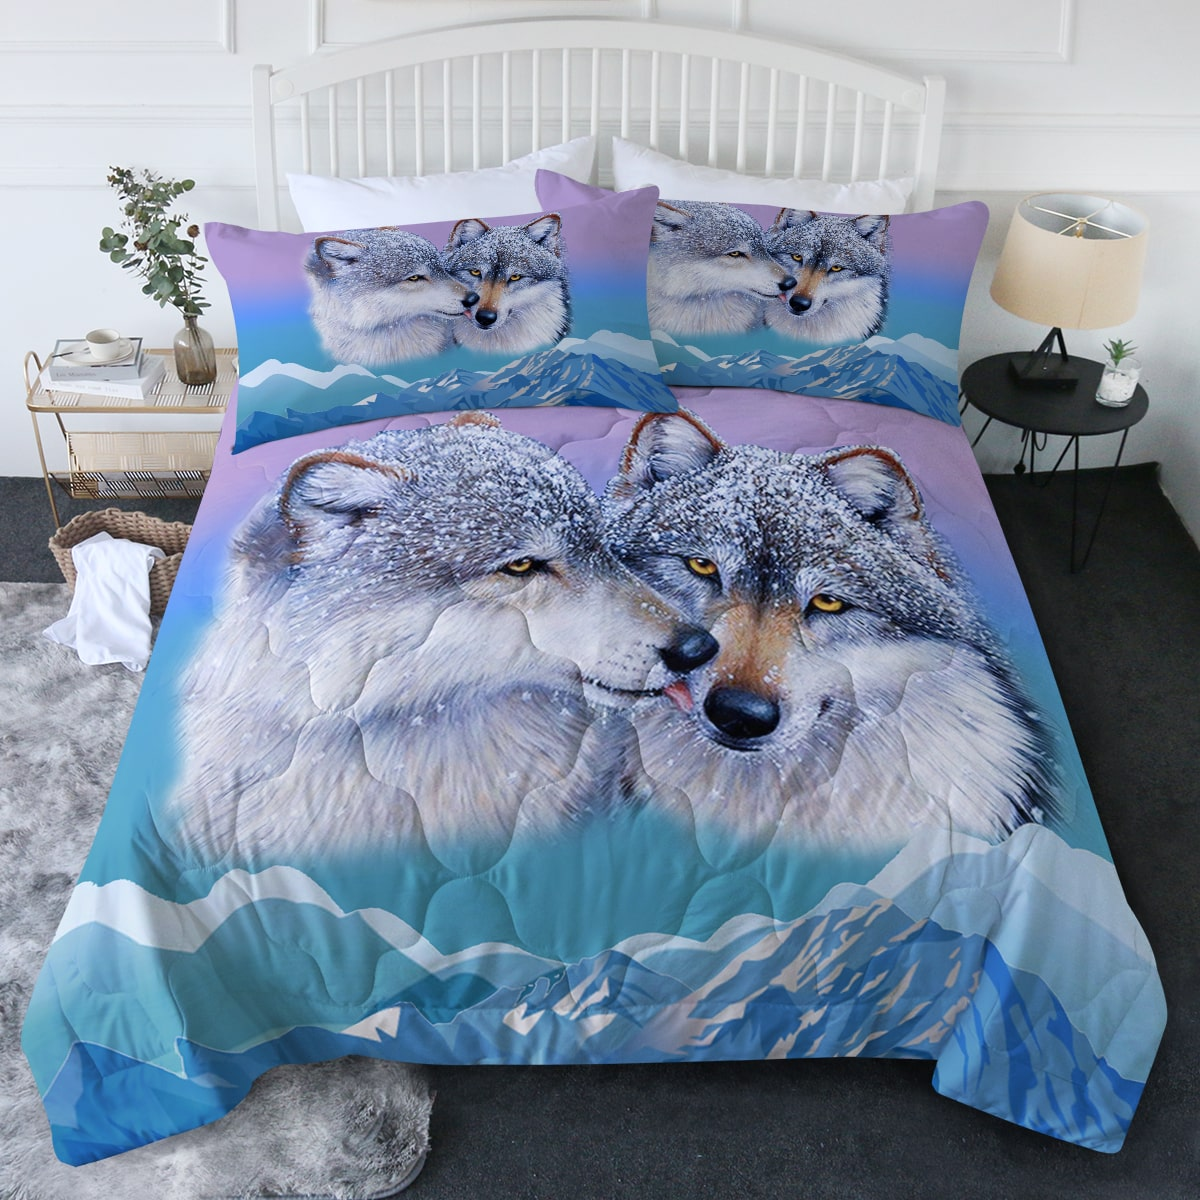 Wolf's Kiss Comforter Bedding Set